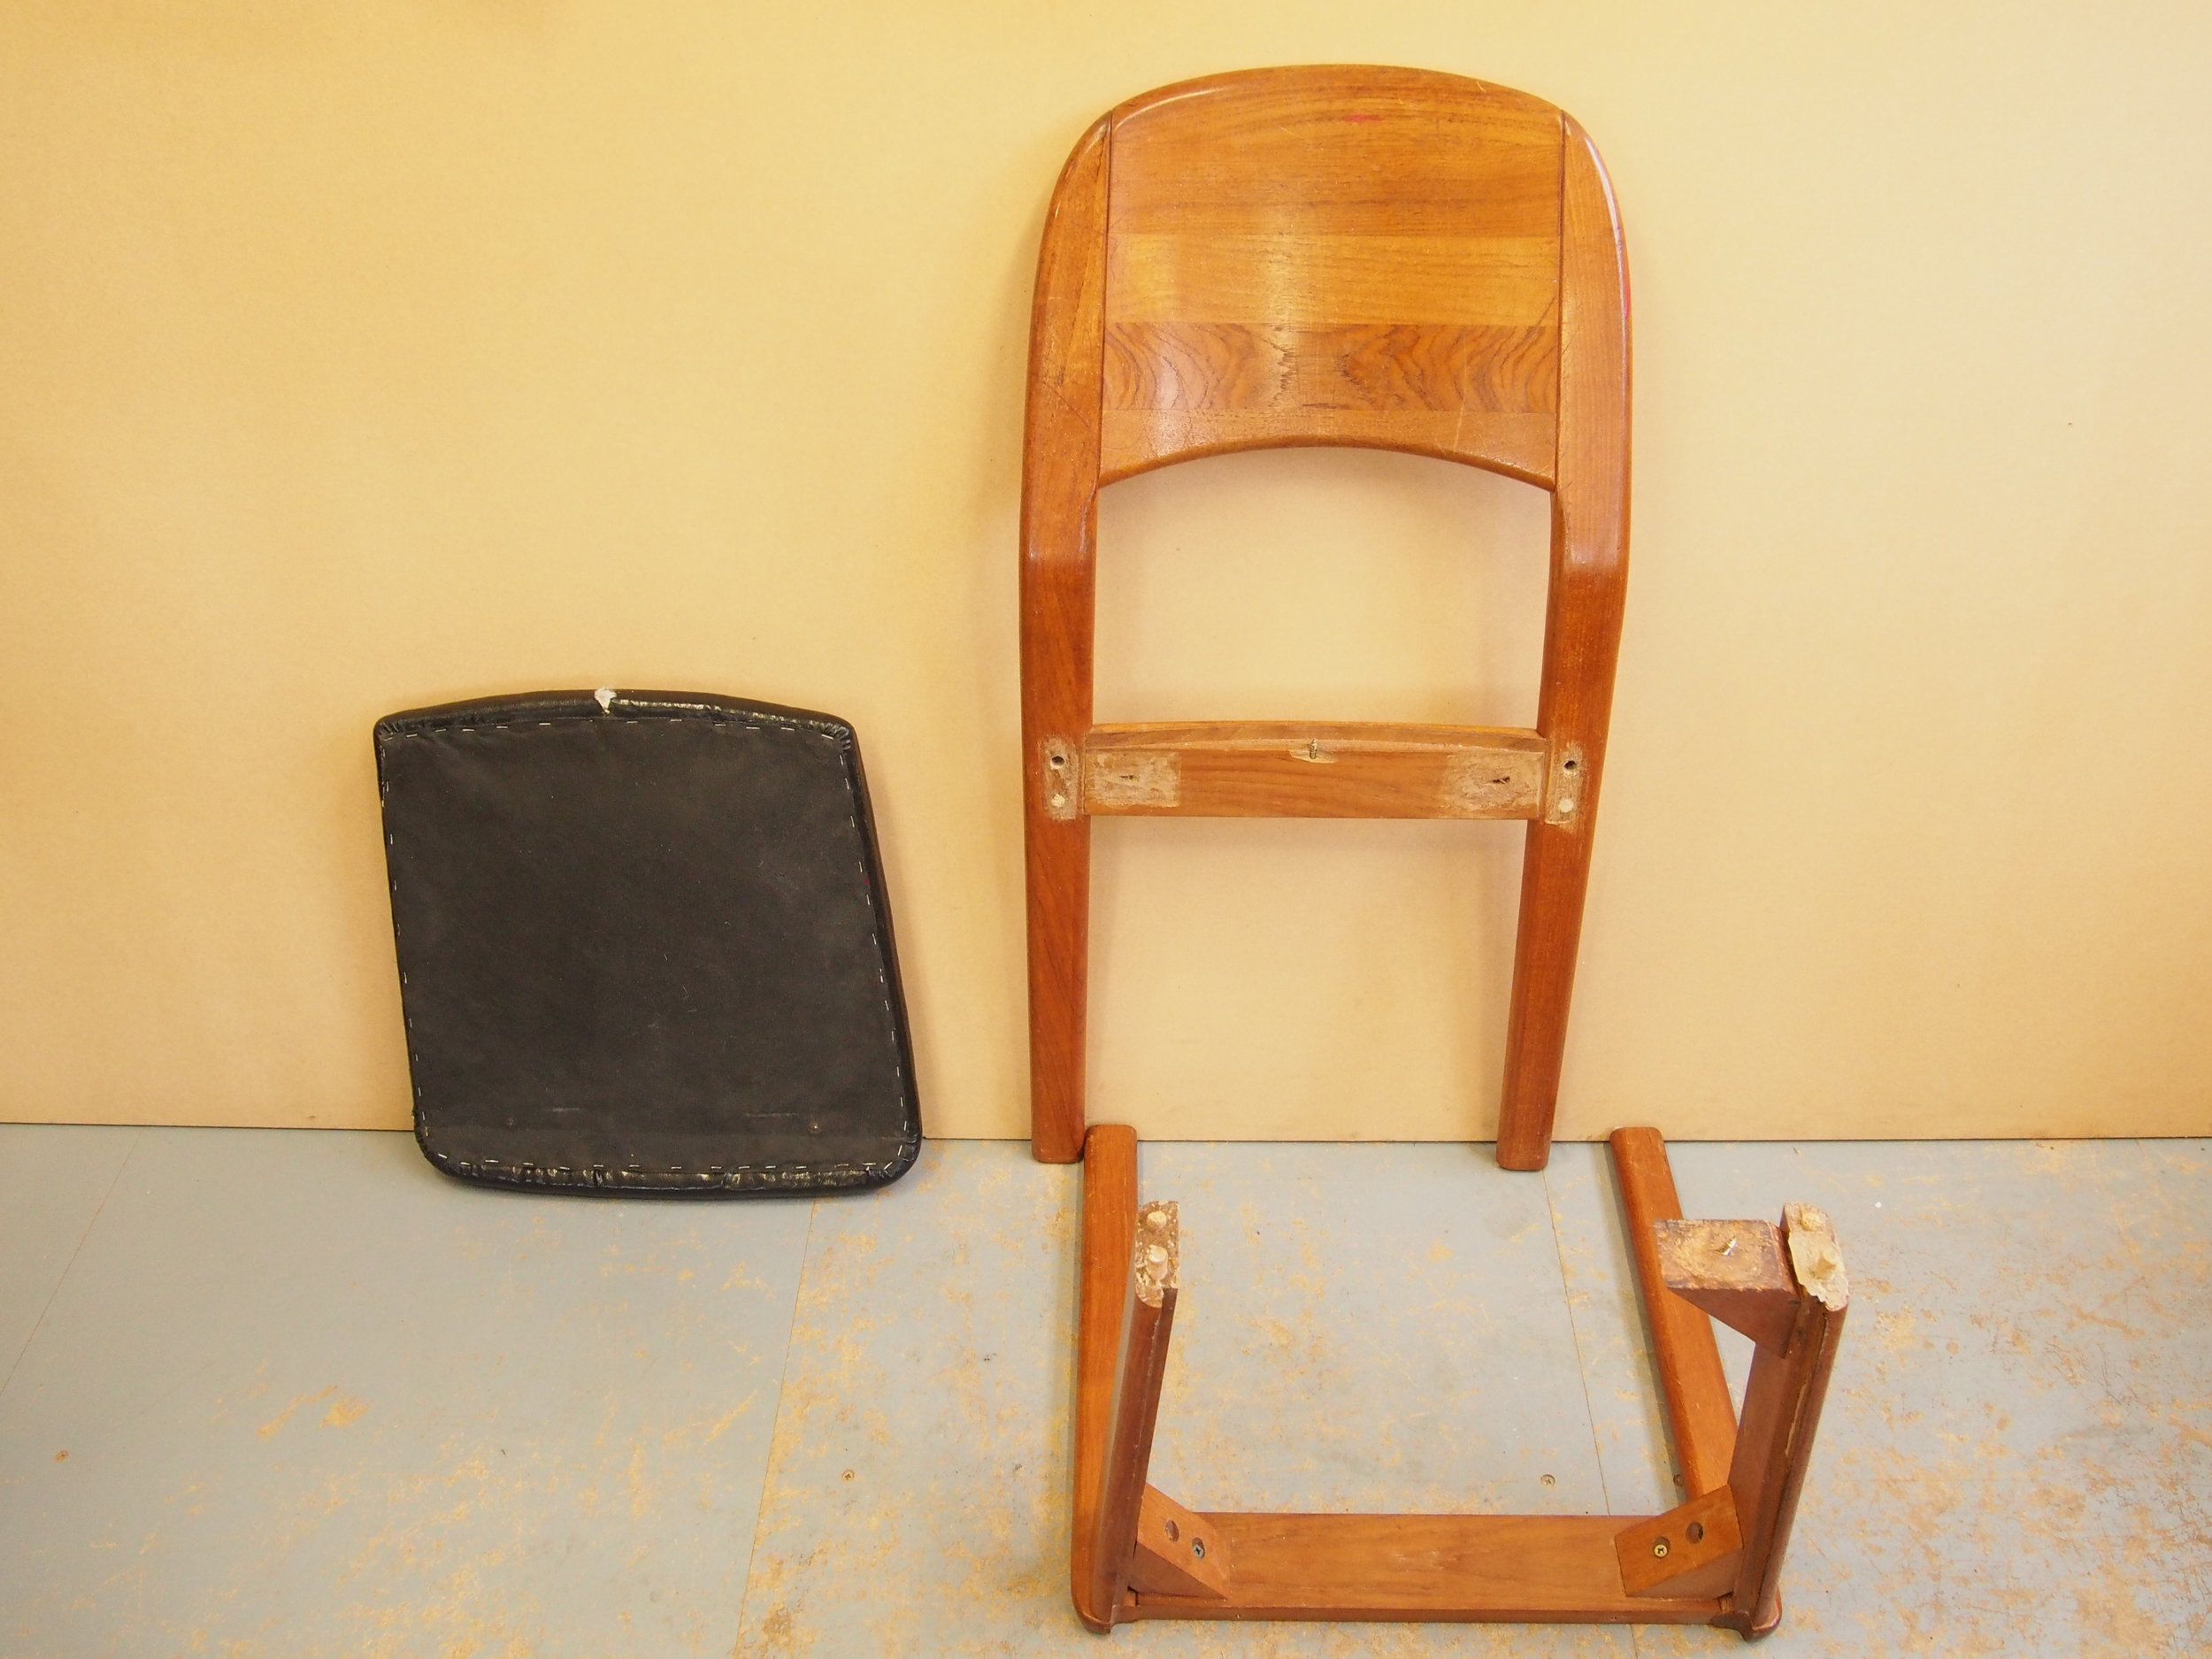 Before Restoration of Cherry Wood Dining Chairs   Original condition of the Cheery Wood Chair had broken joints which required repairing and remaking.